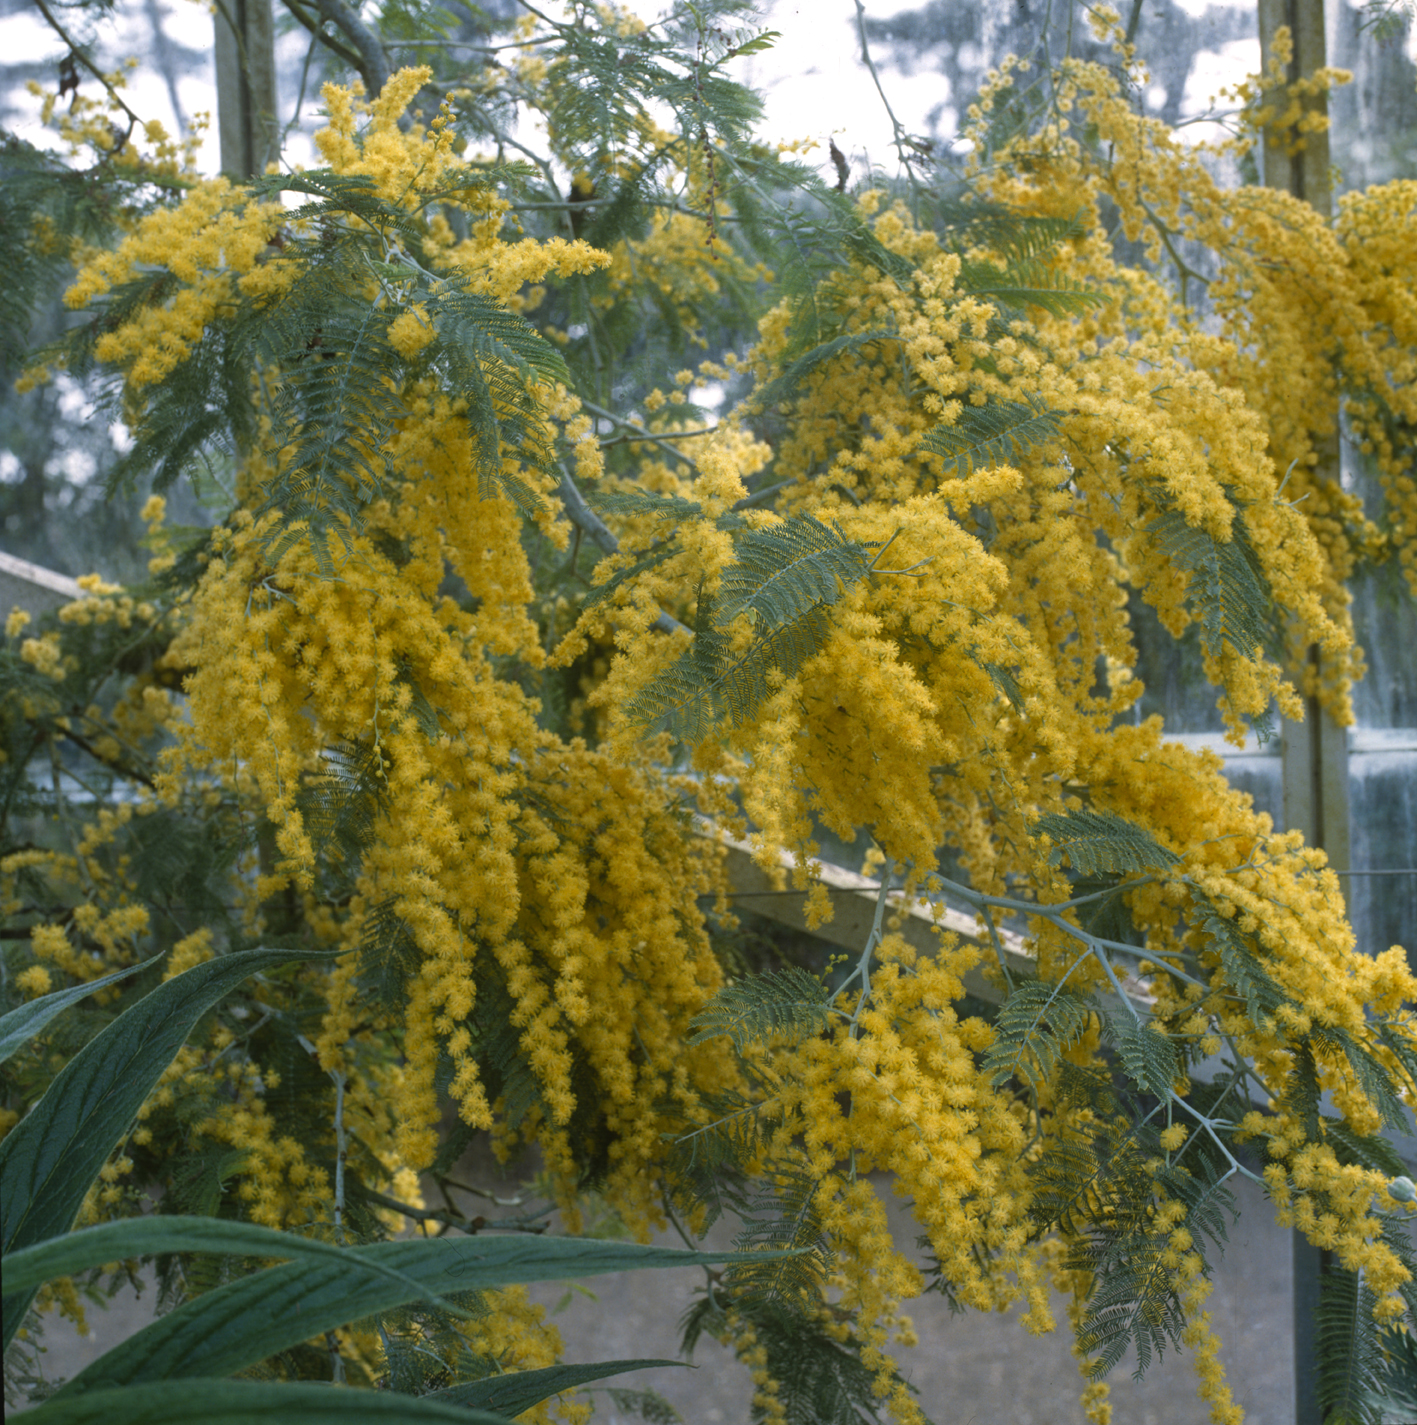 How to grow acacia mimosa amateur gardening acacia baileyana mightylinksfo